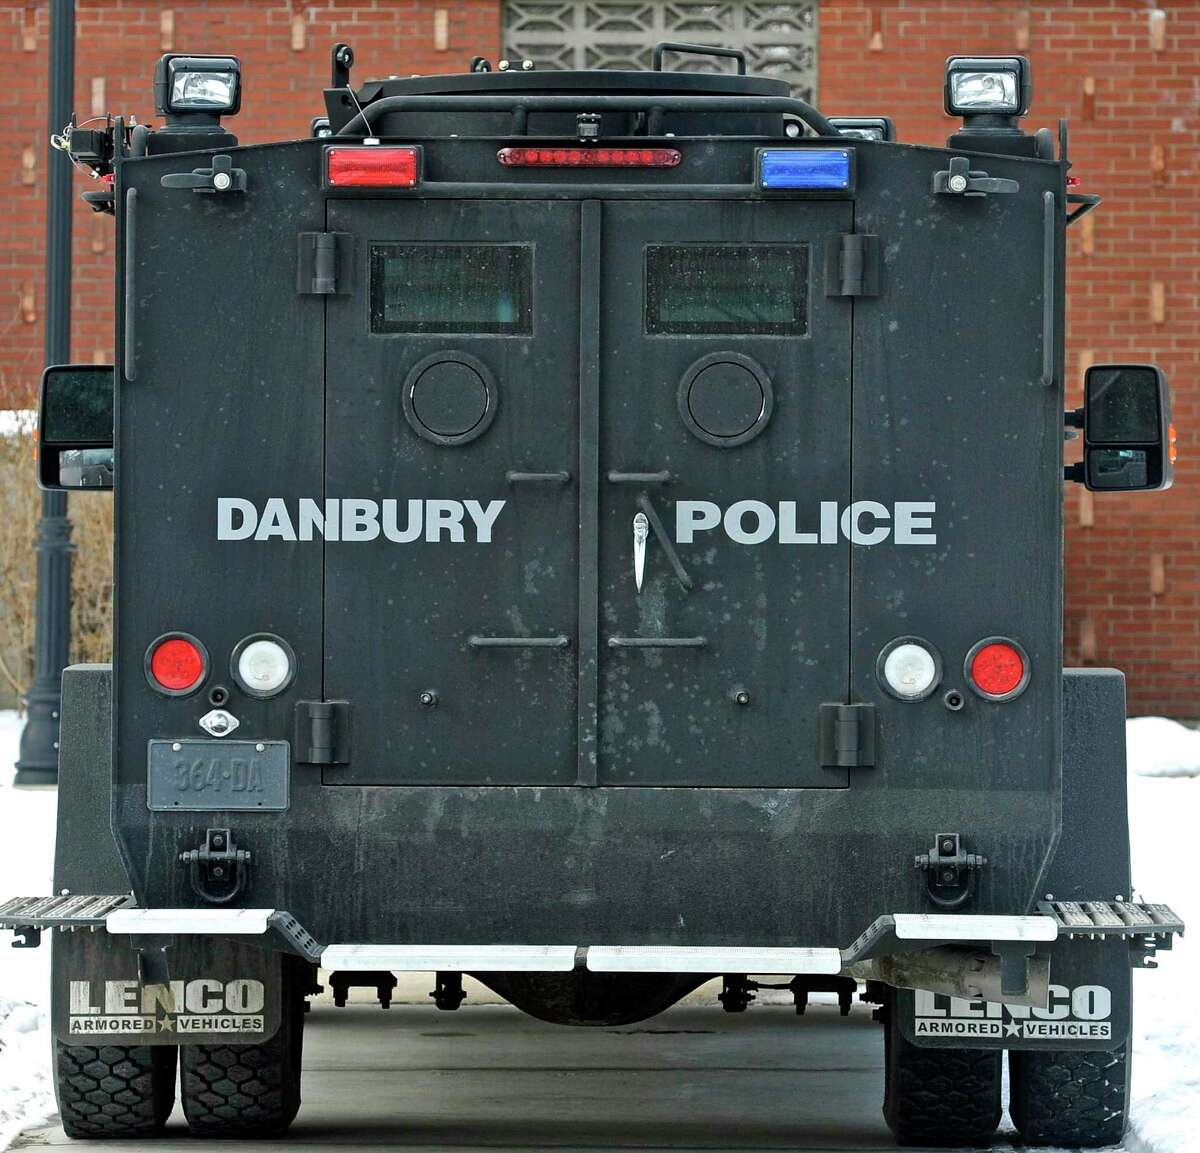 A Danbury Police Department Emergency Services Unit is parked next to Litchfield Hall during a Western Connecticut State University Police Department live shooting exercise with Danbury and other area police departments at the WCSU midtown campus Campus on Thursday, February 11, 2016, in Danbury, Conn. The training drill took place in the university's Litchfield Hall dormitory building.